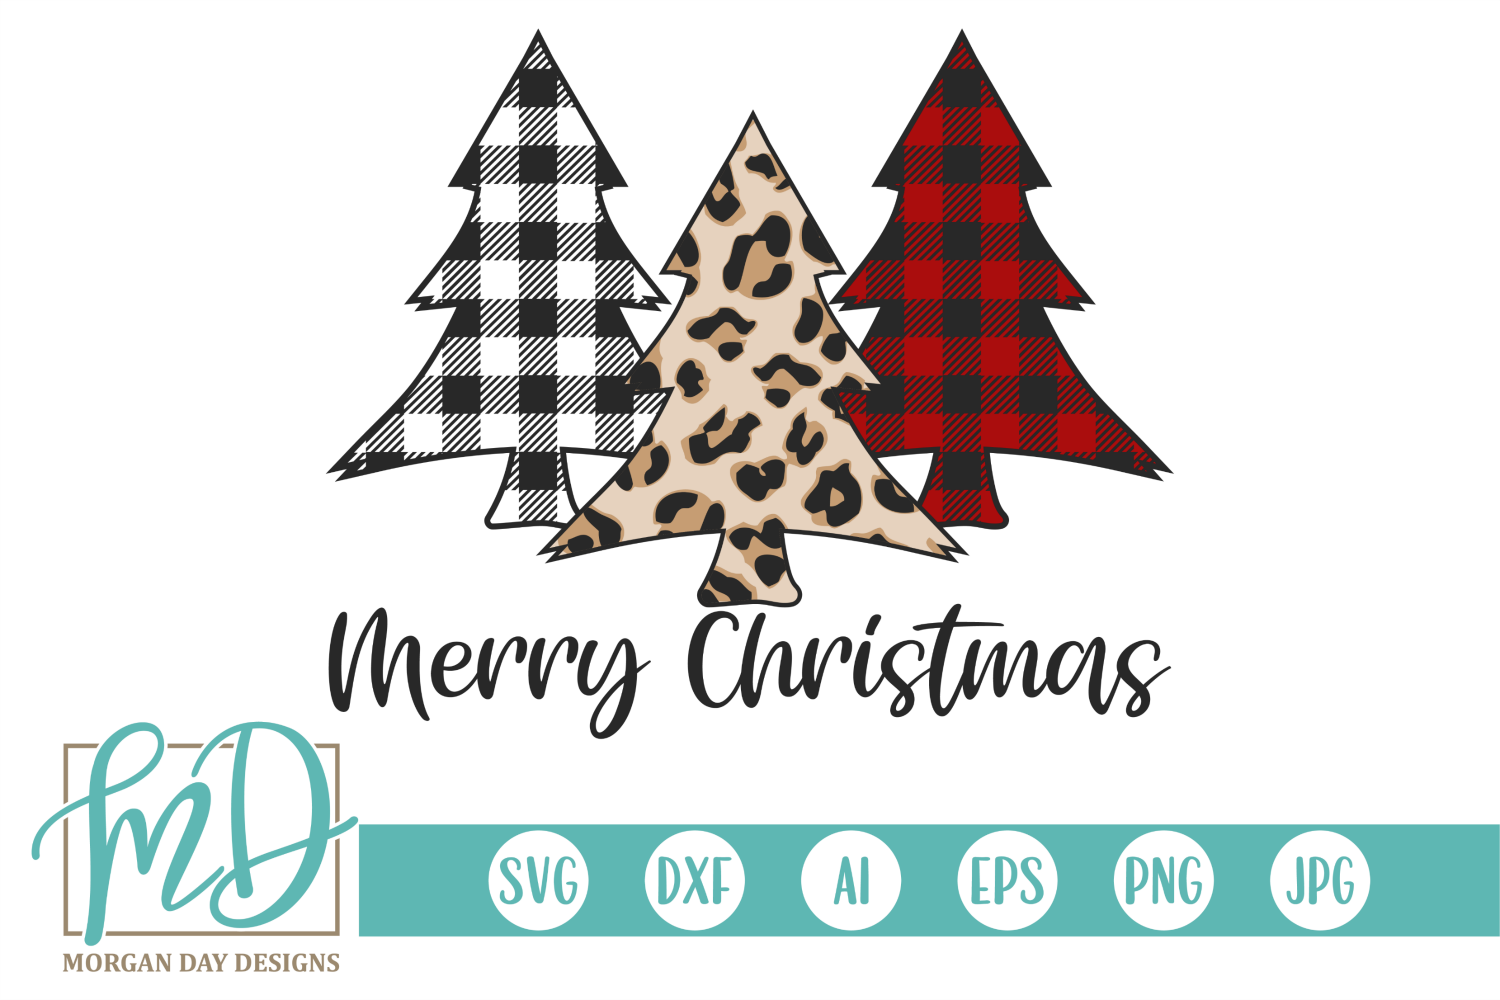 Merry Christmas Svg With Trees